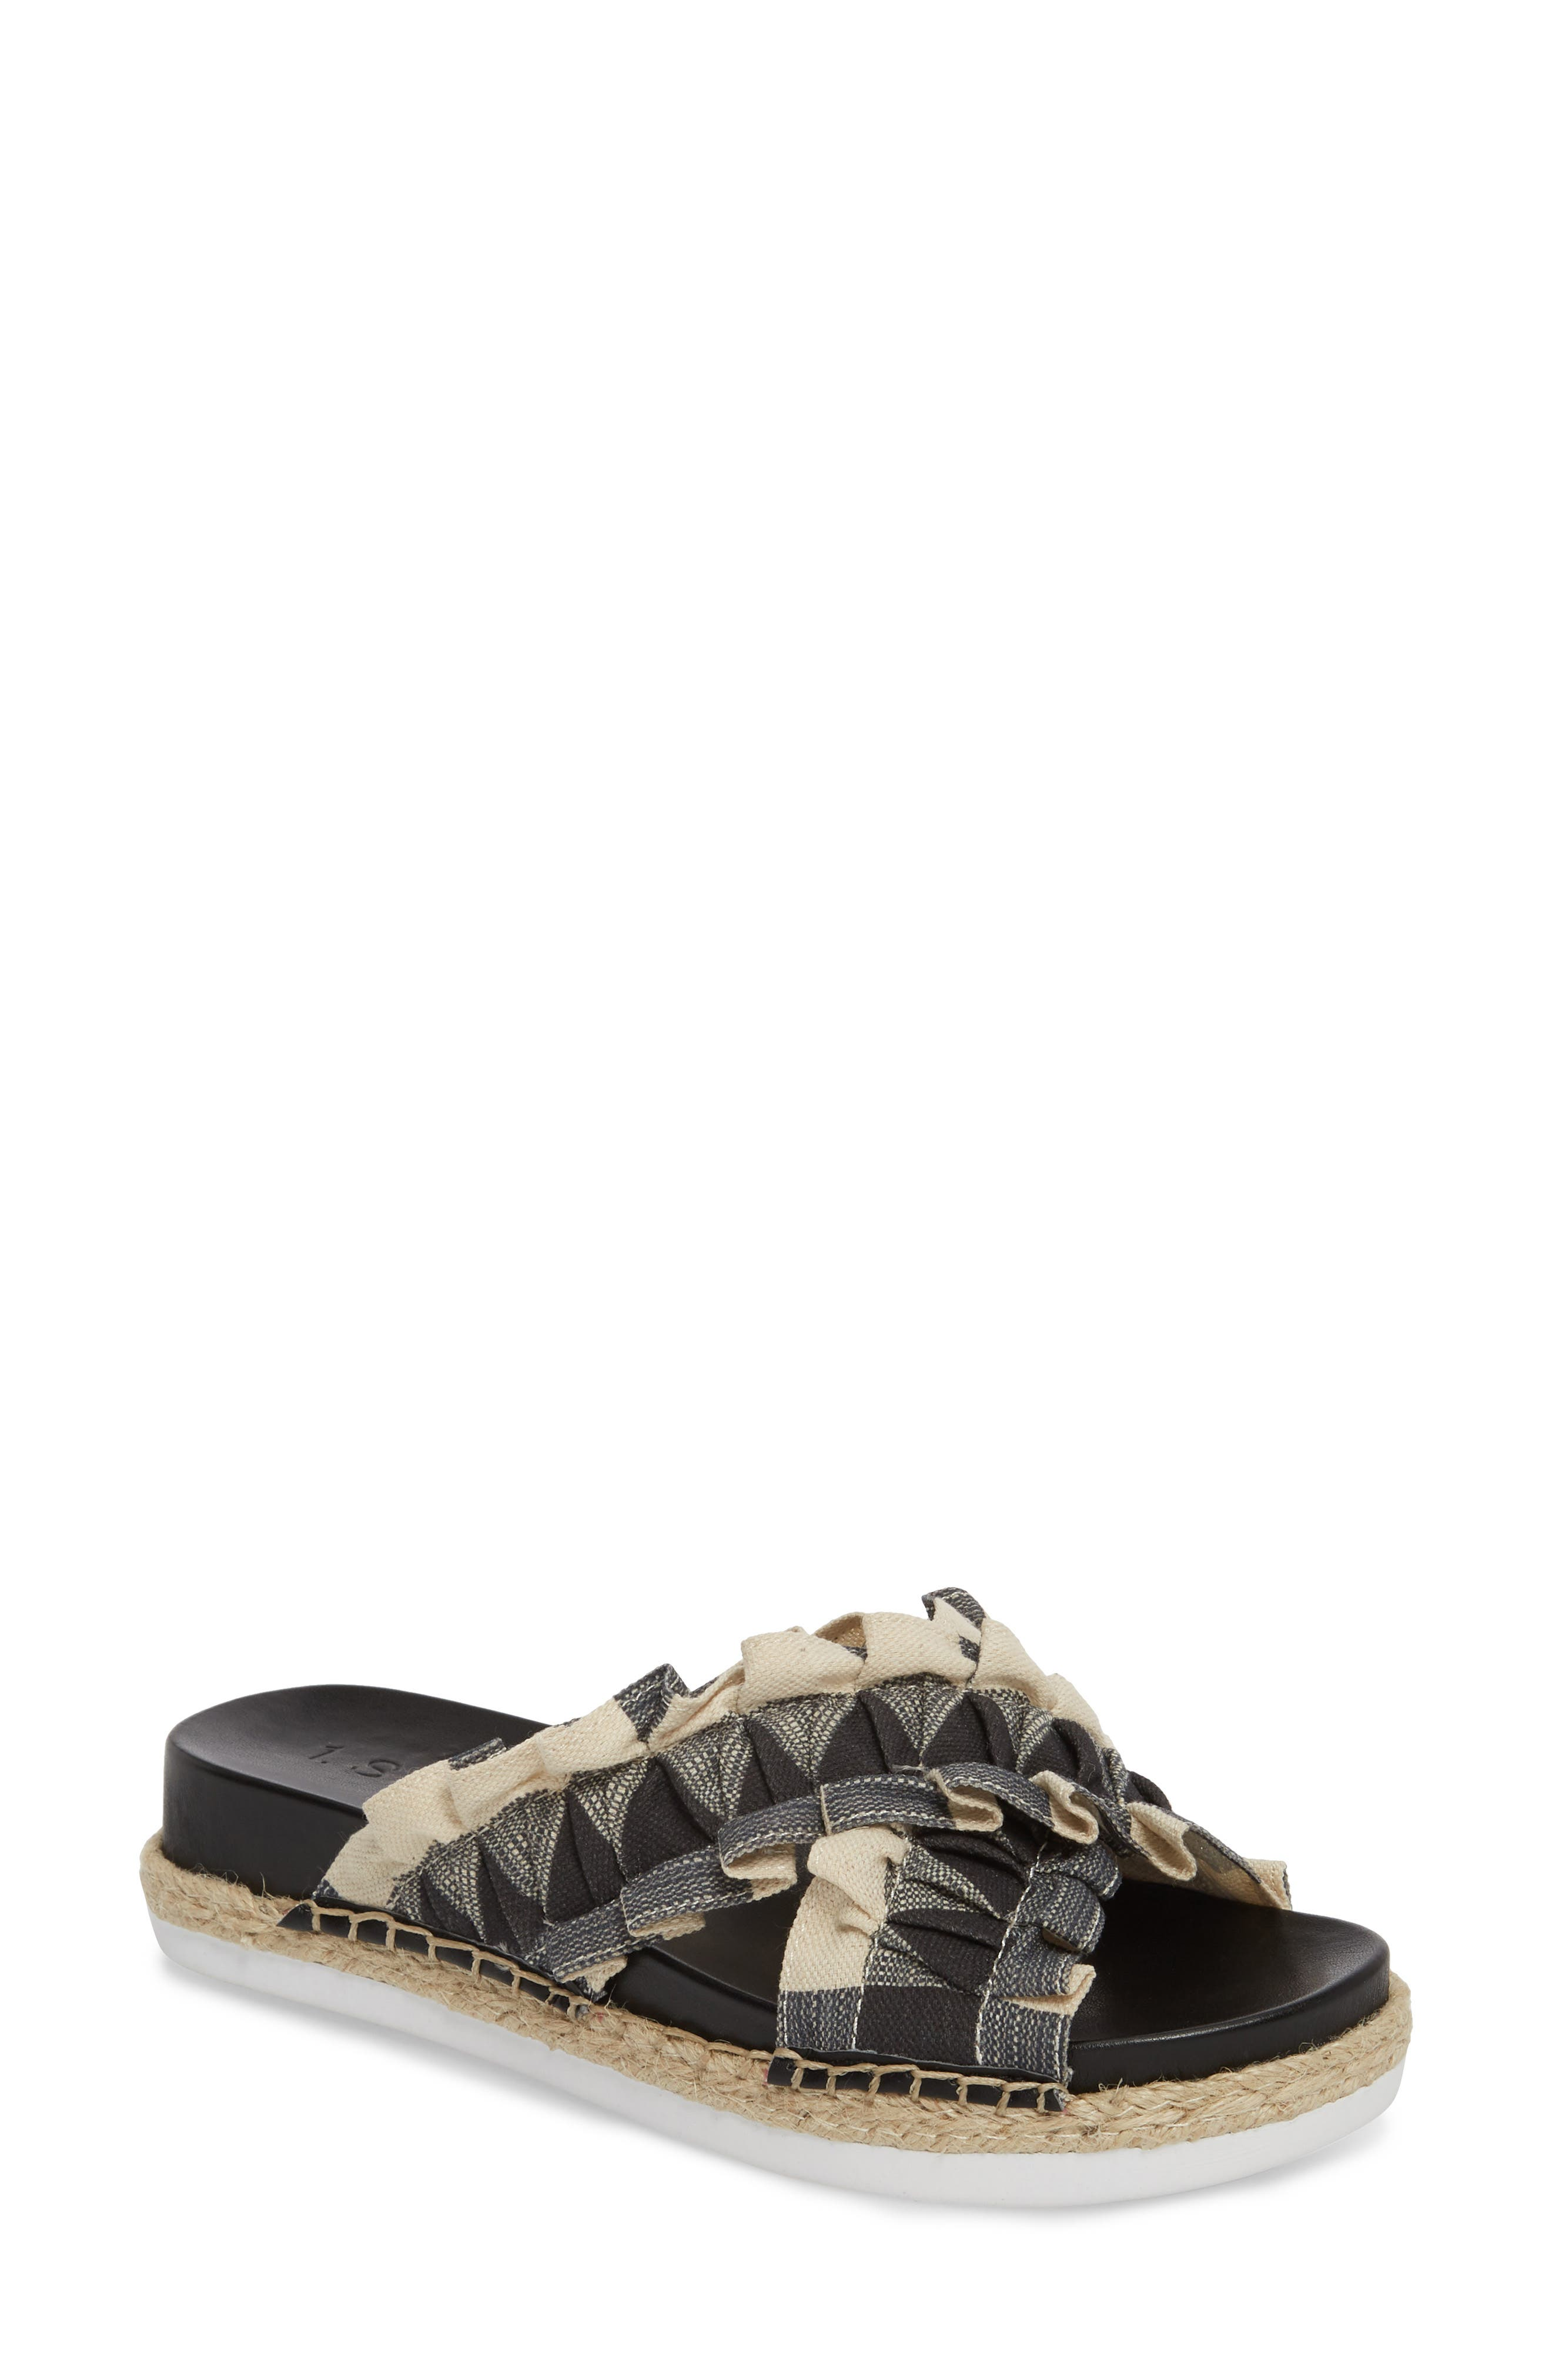 Salyn Slide Sandal,                         Main,                         color, BLACK GINGHAM LINEN FABRIC